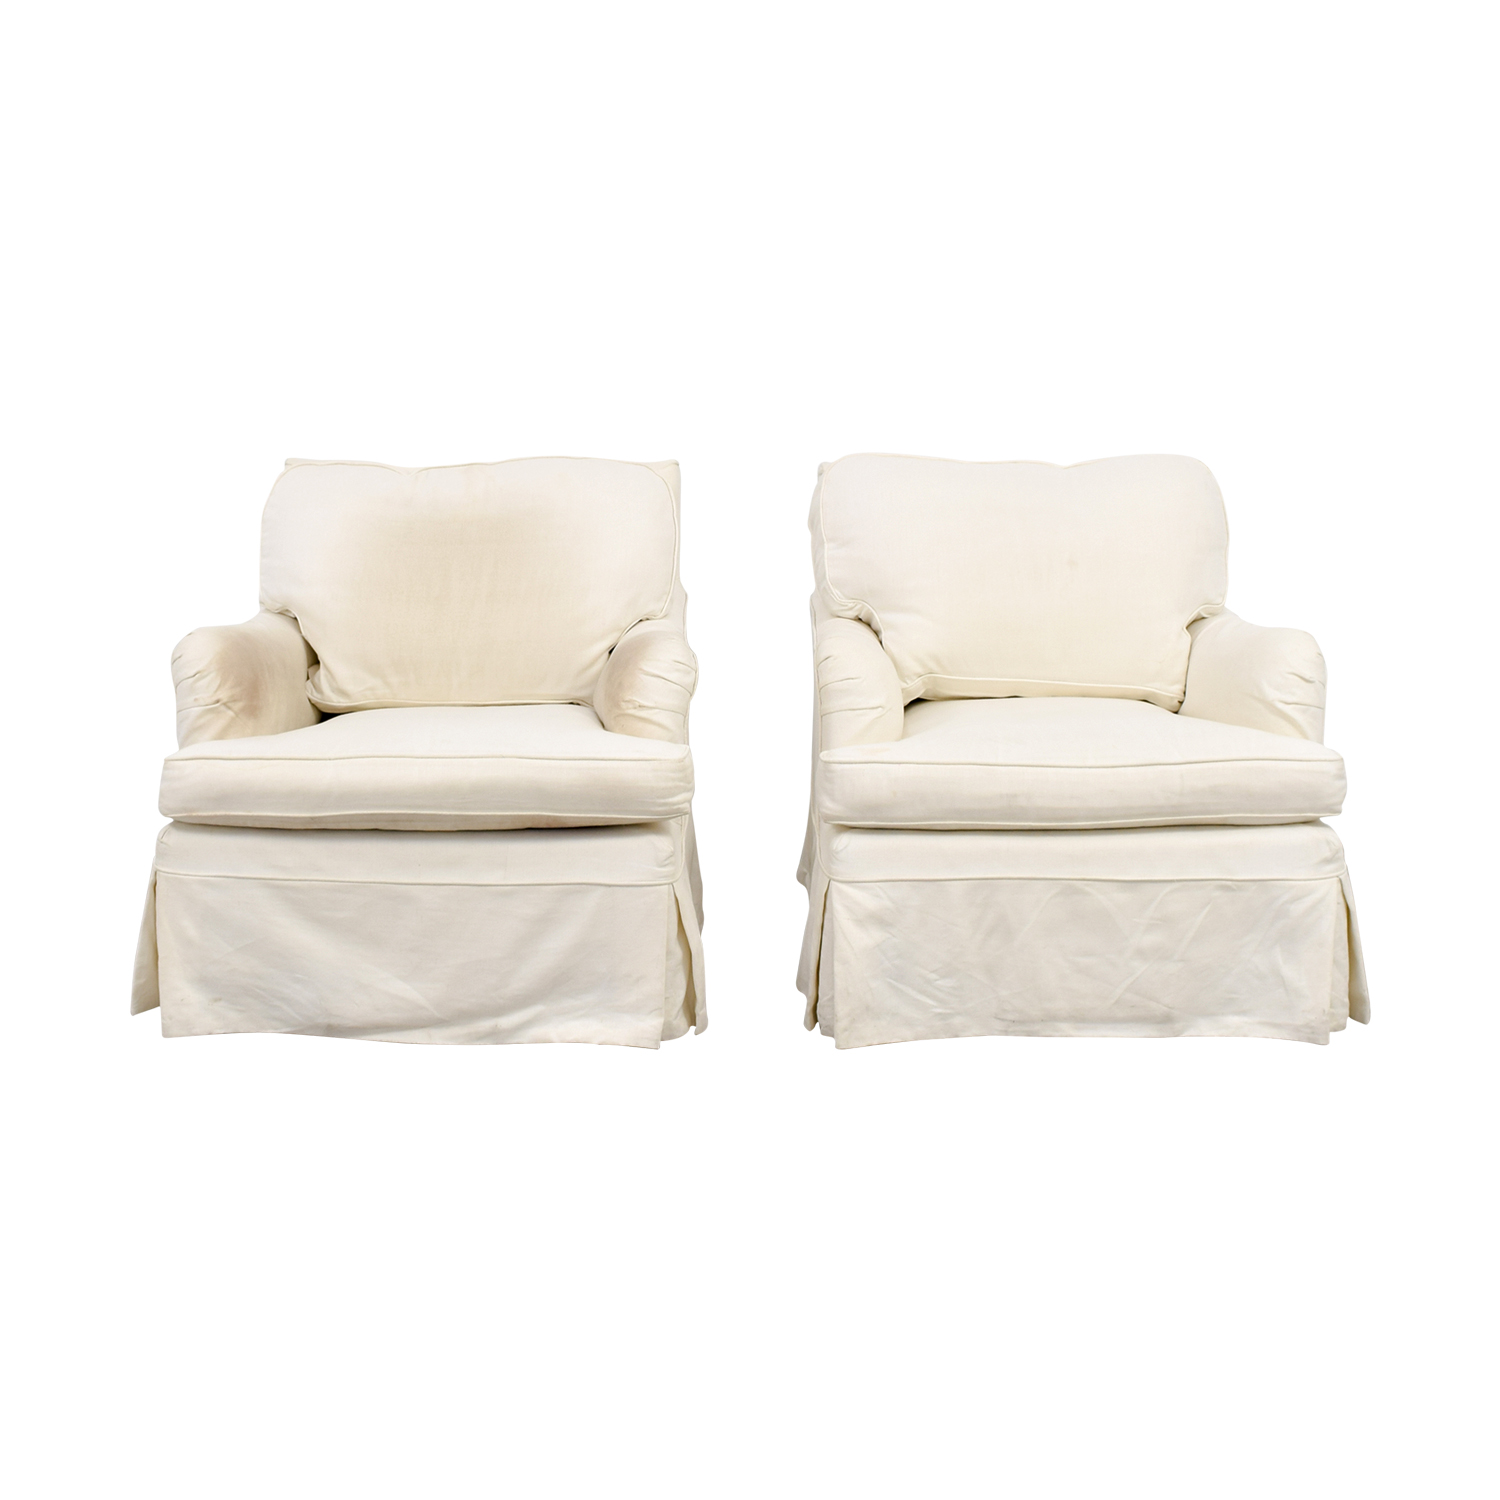 swivel arm chairs black chair covers with gold sash 60 off west elm everett grey shop william farrell upholstered online